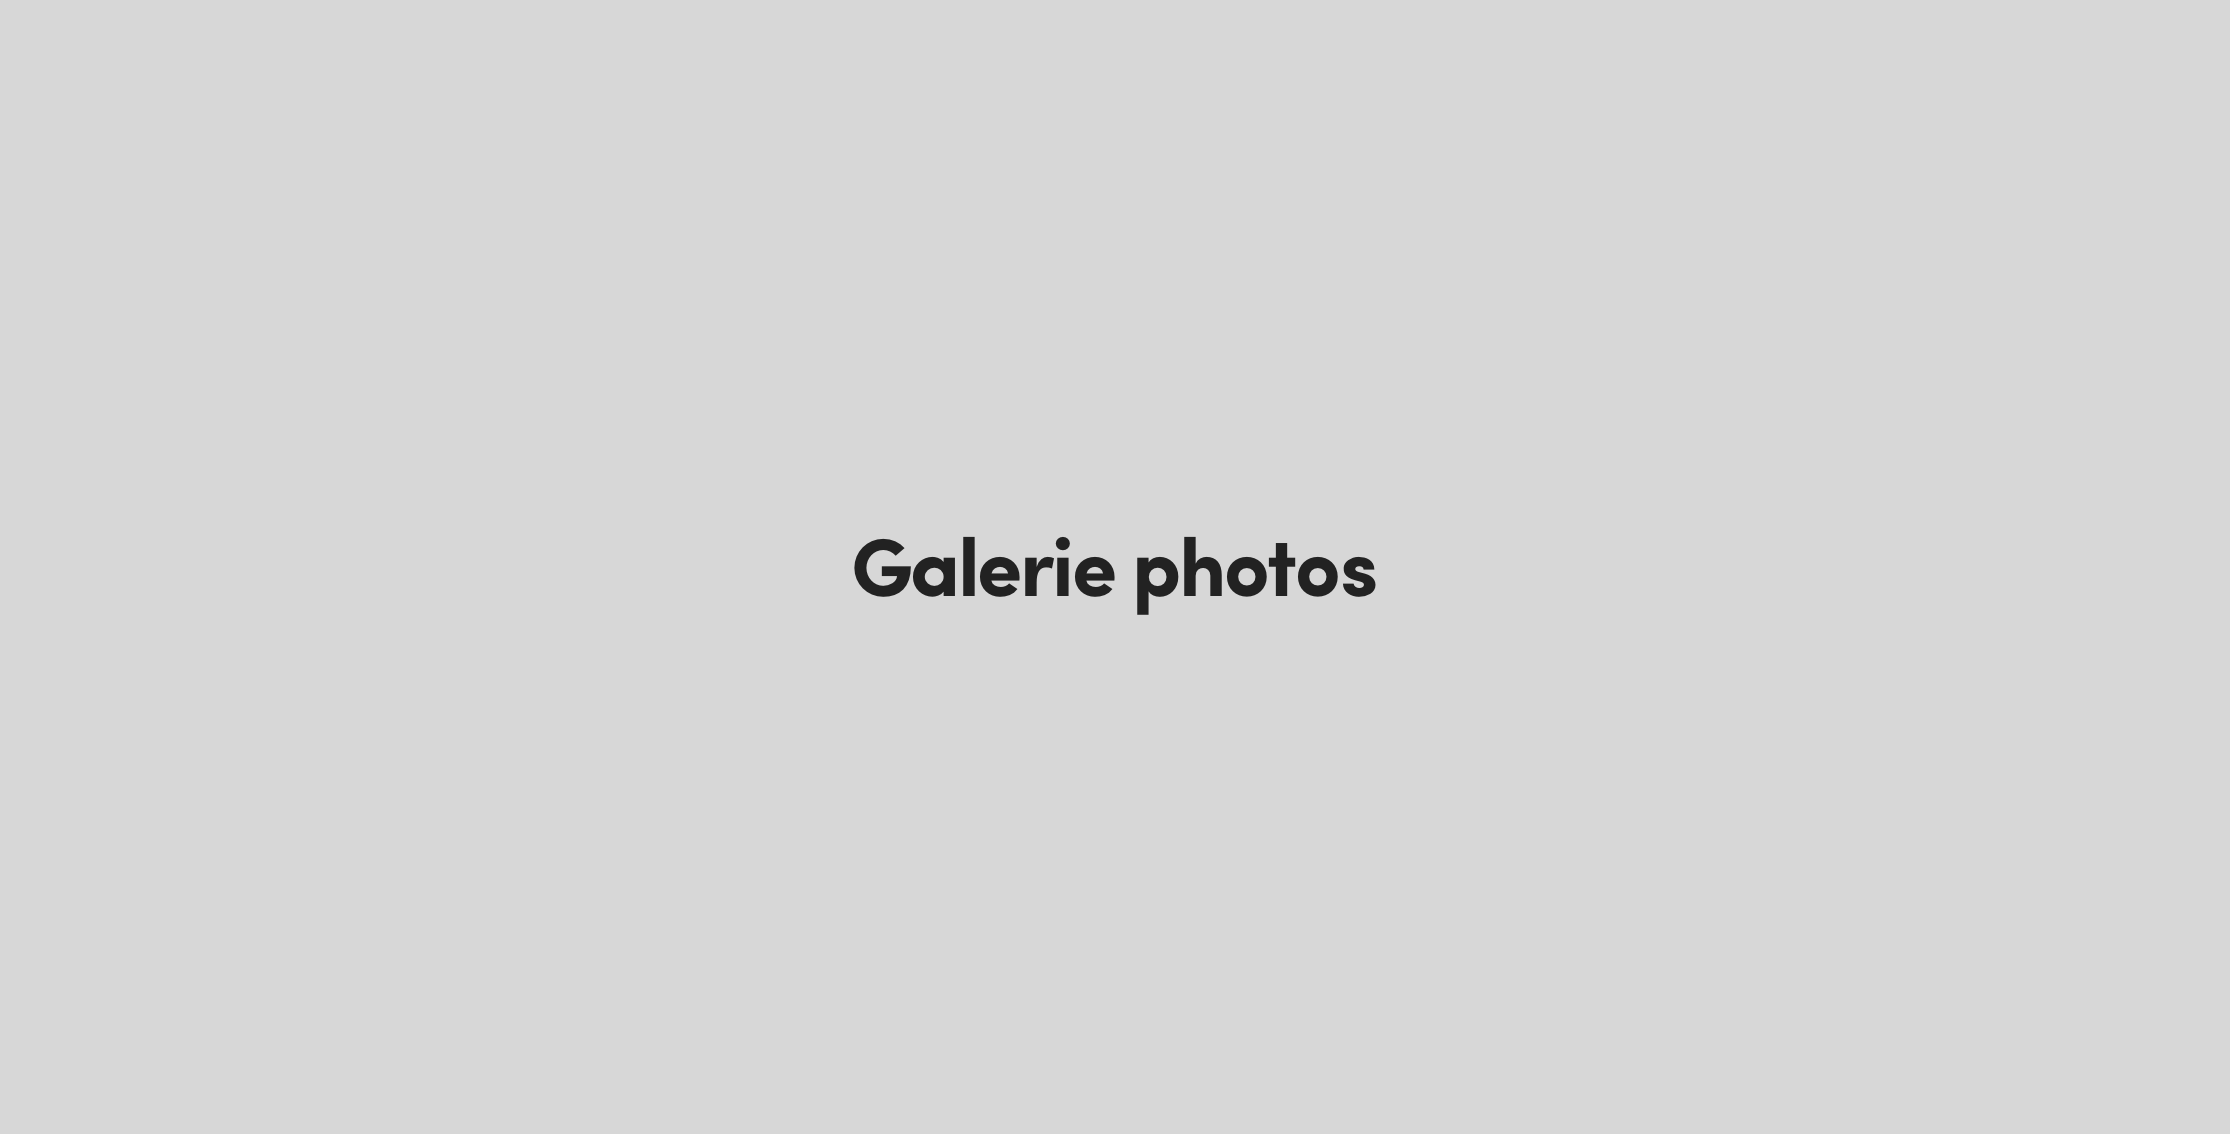 placeholder_galerie_photos@2x